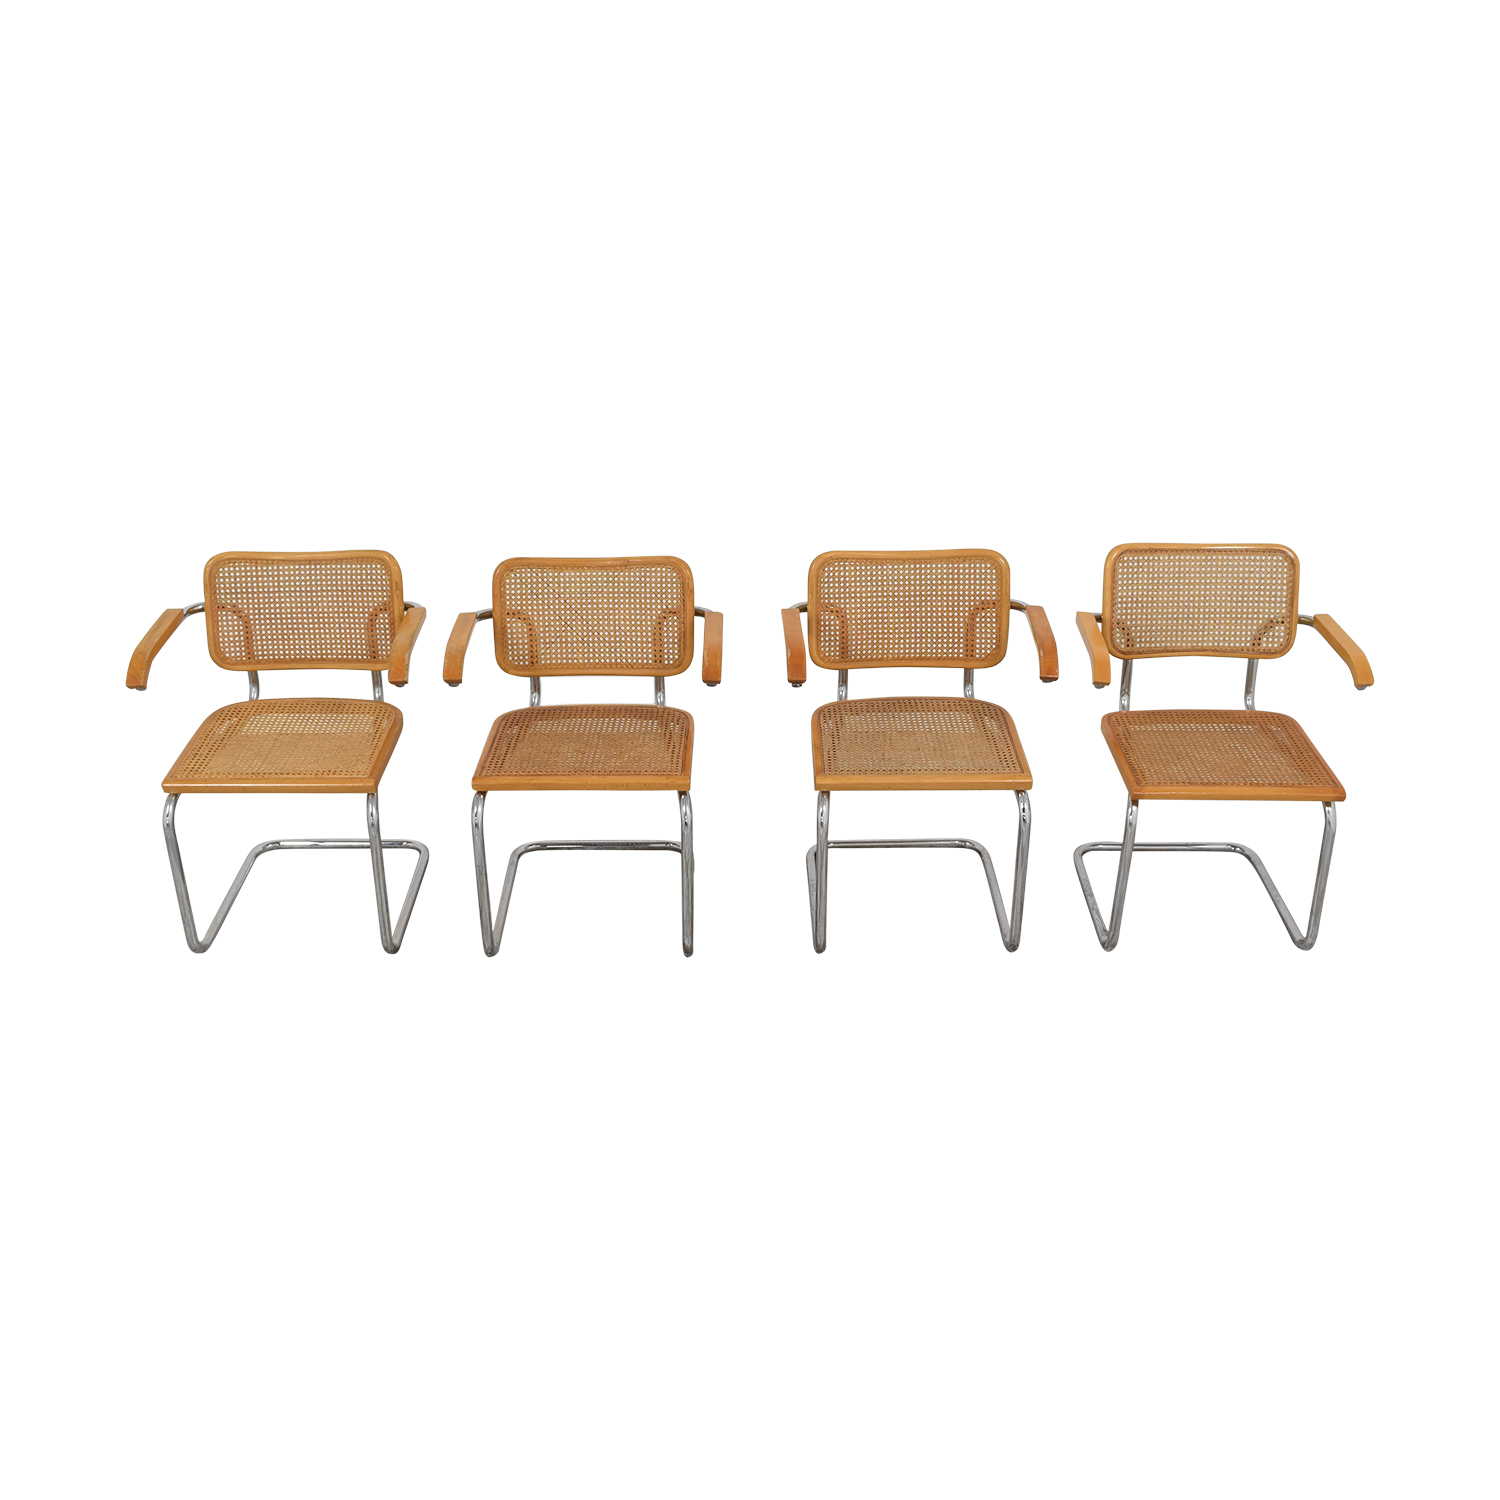 Scandinavian Designs Scandinavian Designs Bendt Dining Arm Chairs second hand